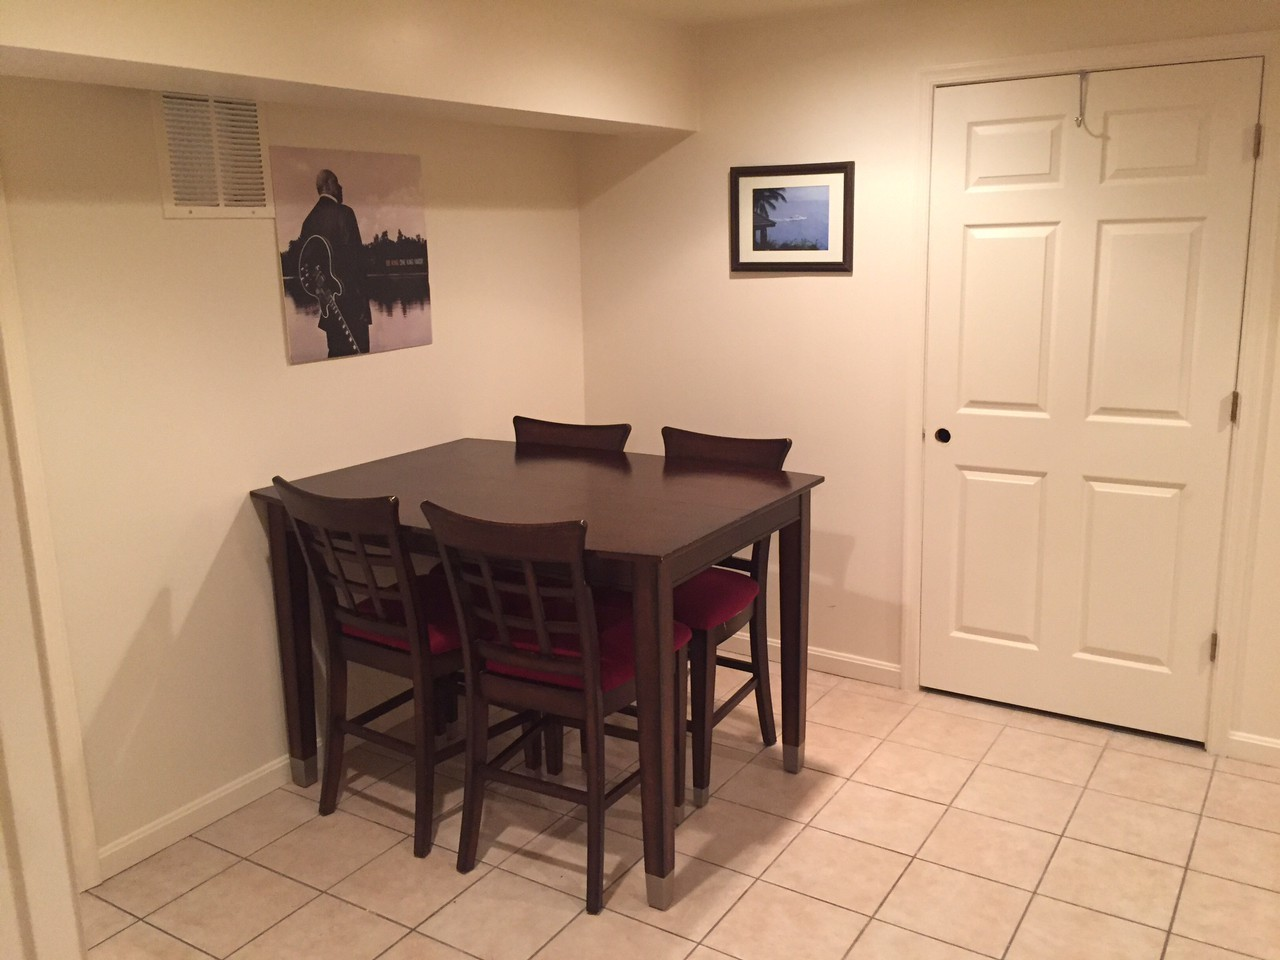 FULLY FURNISHED 1 BEDROOM BASEMENT APARTMENT